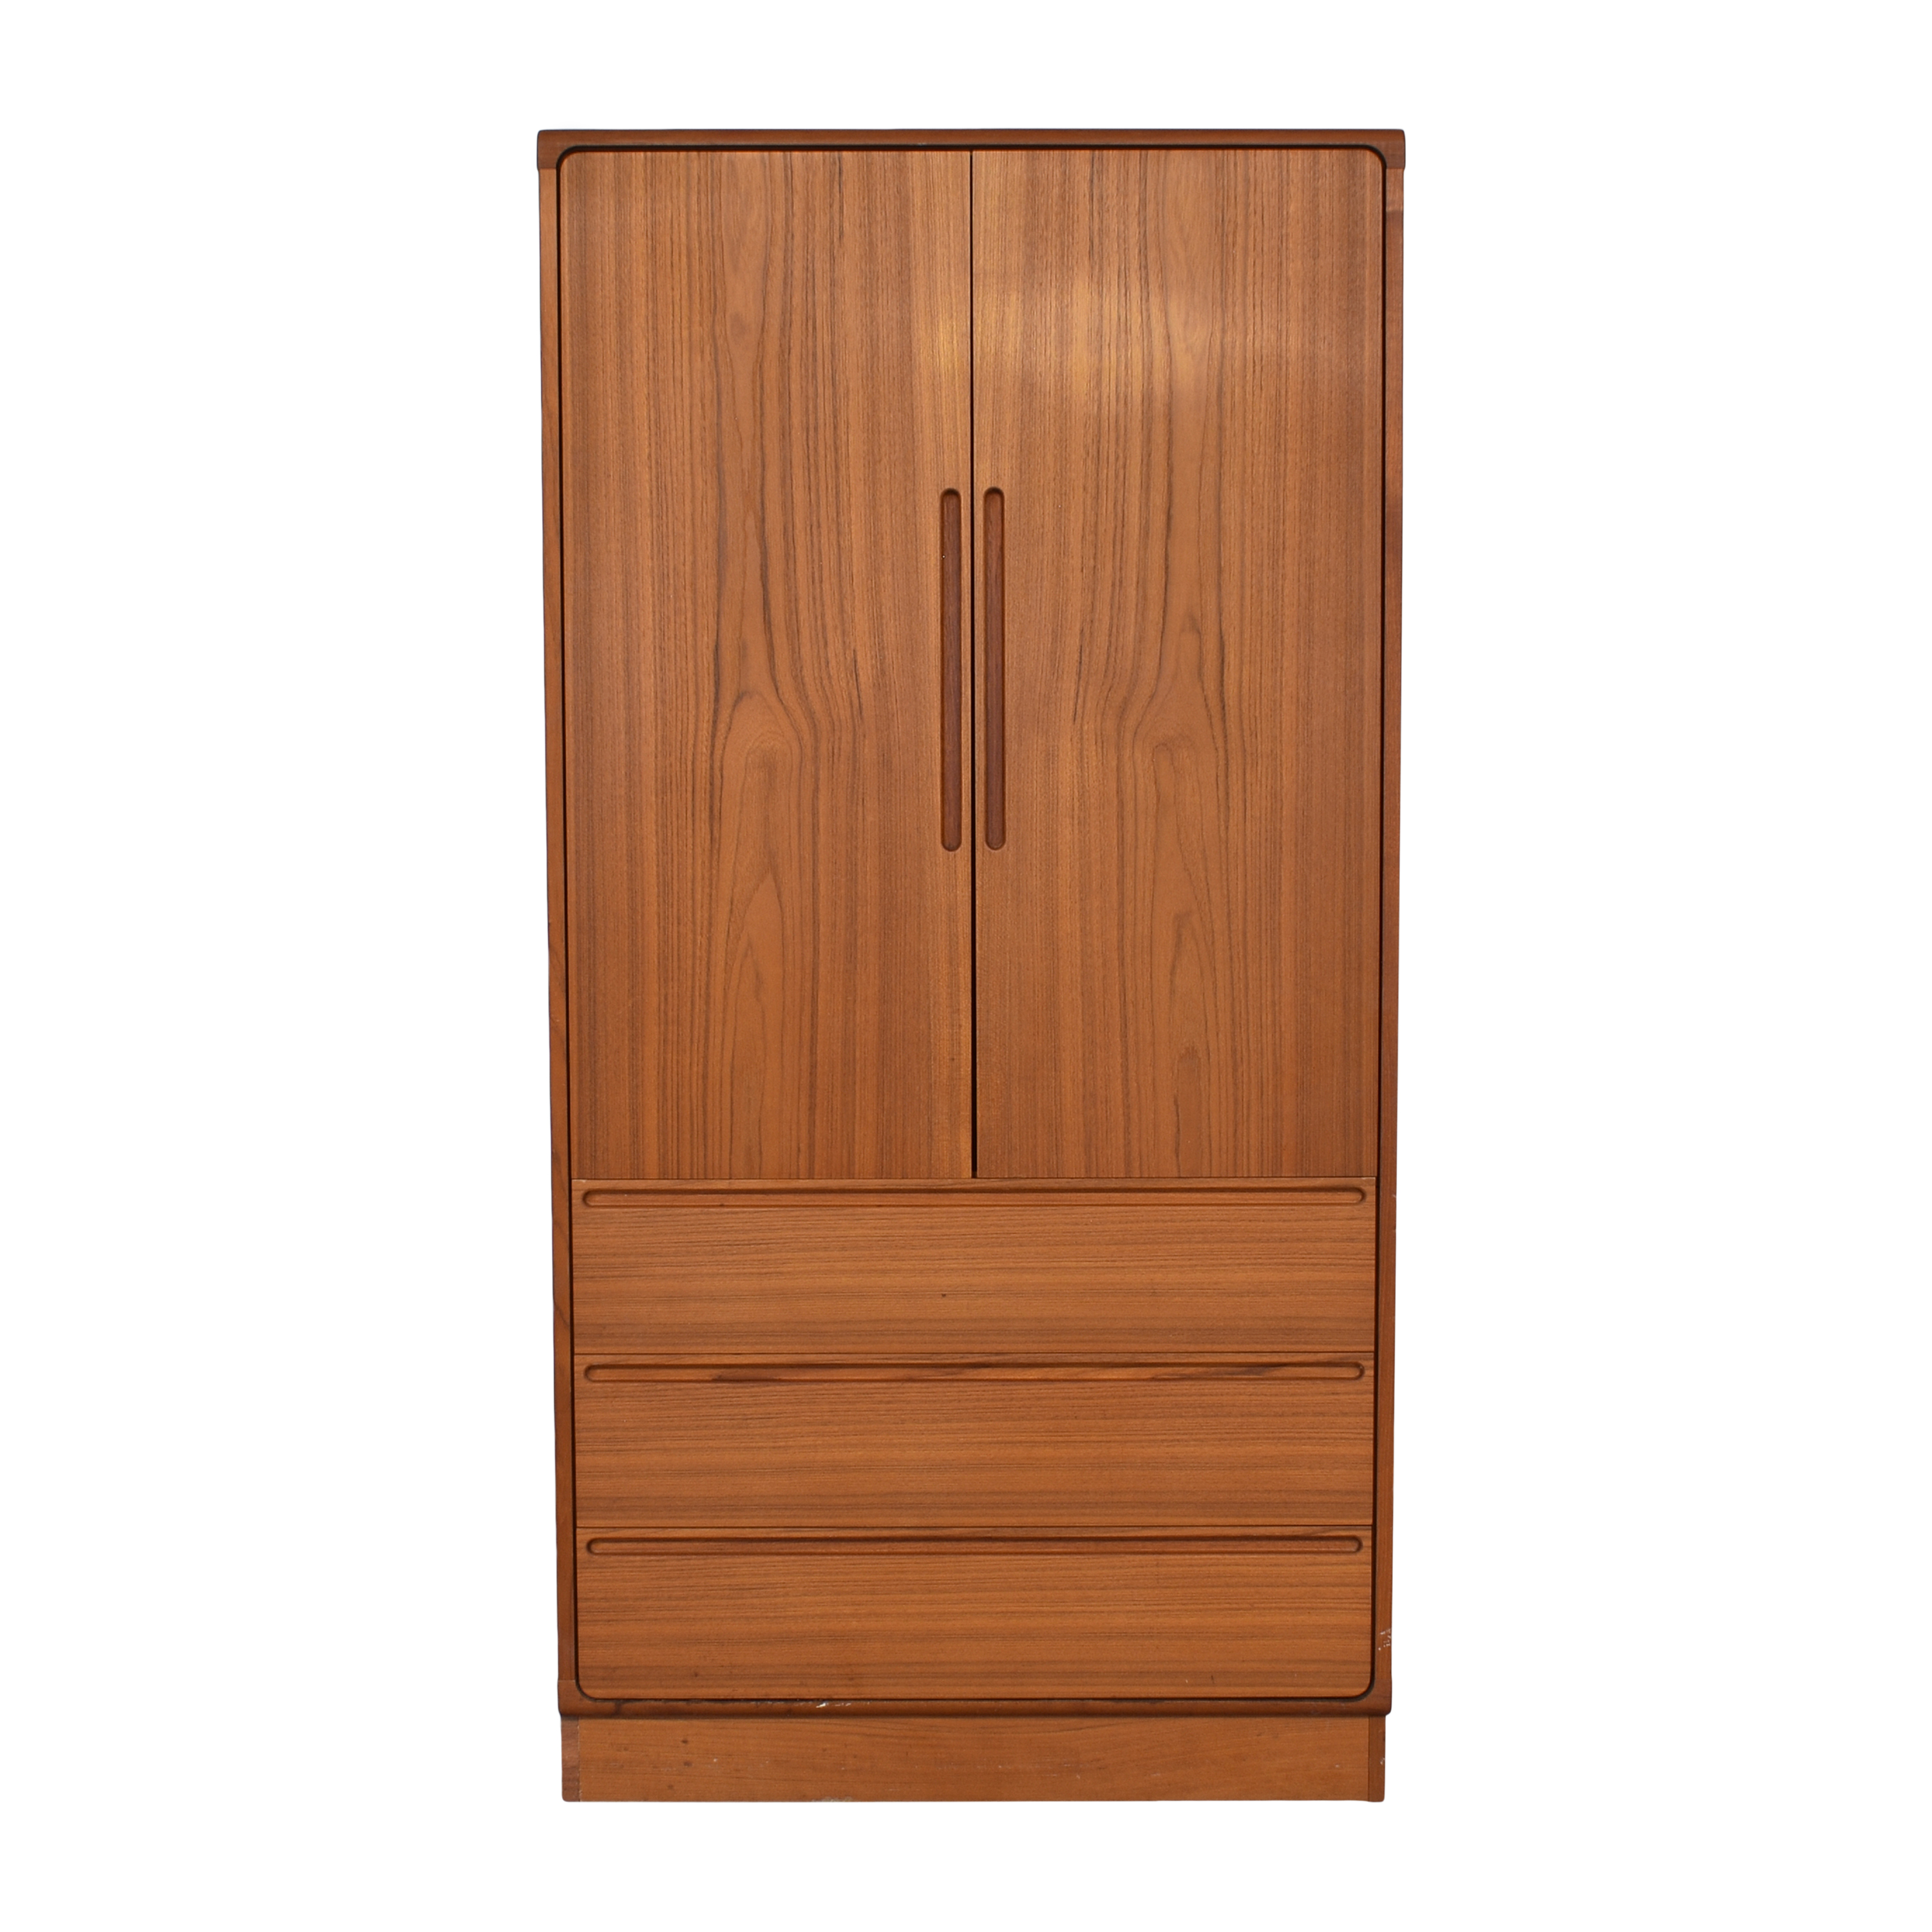 Scandinavian Designs Scandinavian Designs Three Drawer Armoire on sale